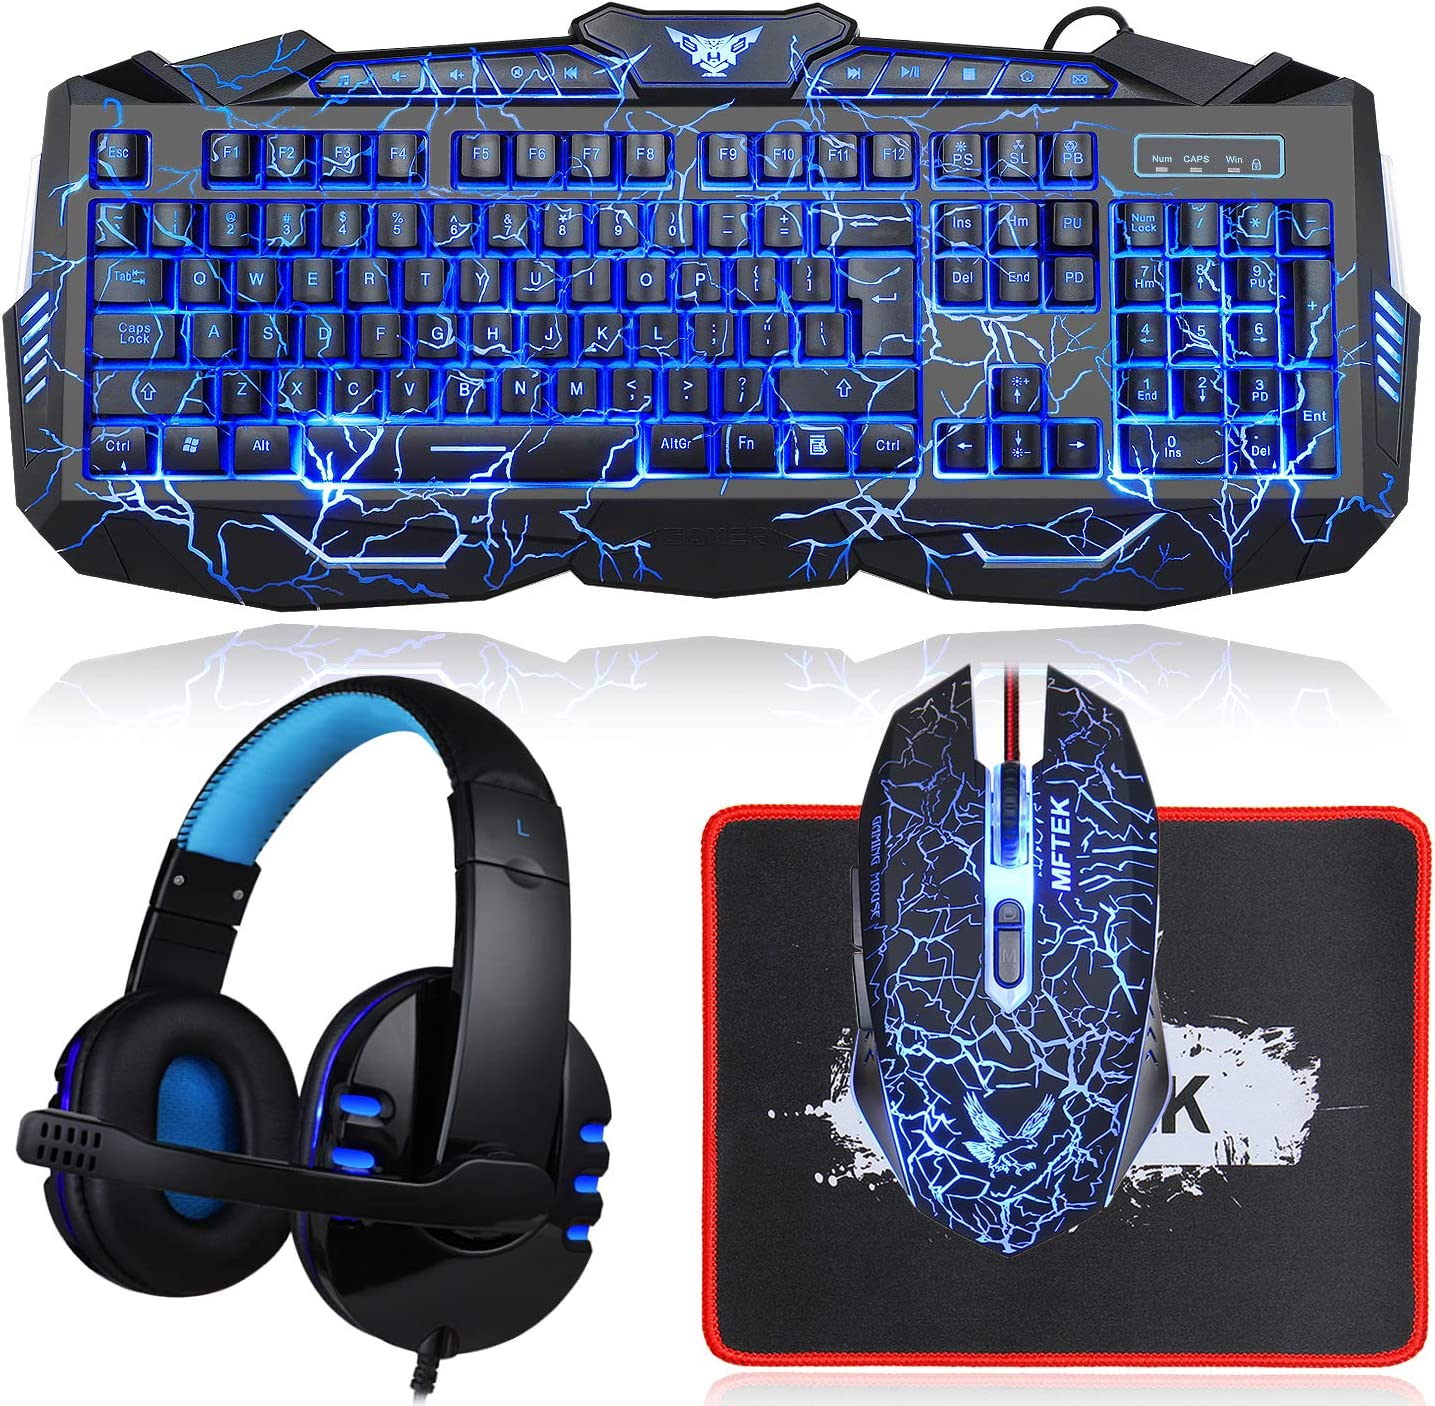 Gaming Keyboard and Mouse Challenge Popular brand the lowest price Combo Backli Crack MFTEK with Headset